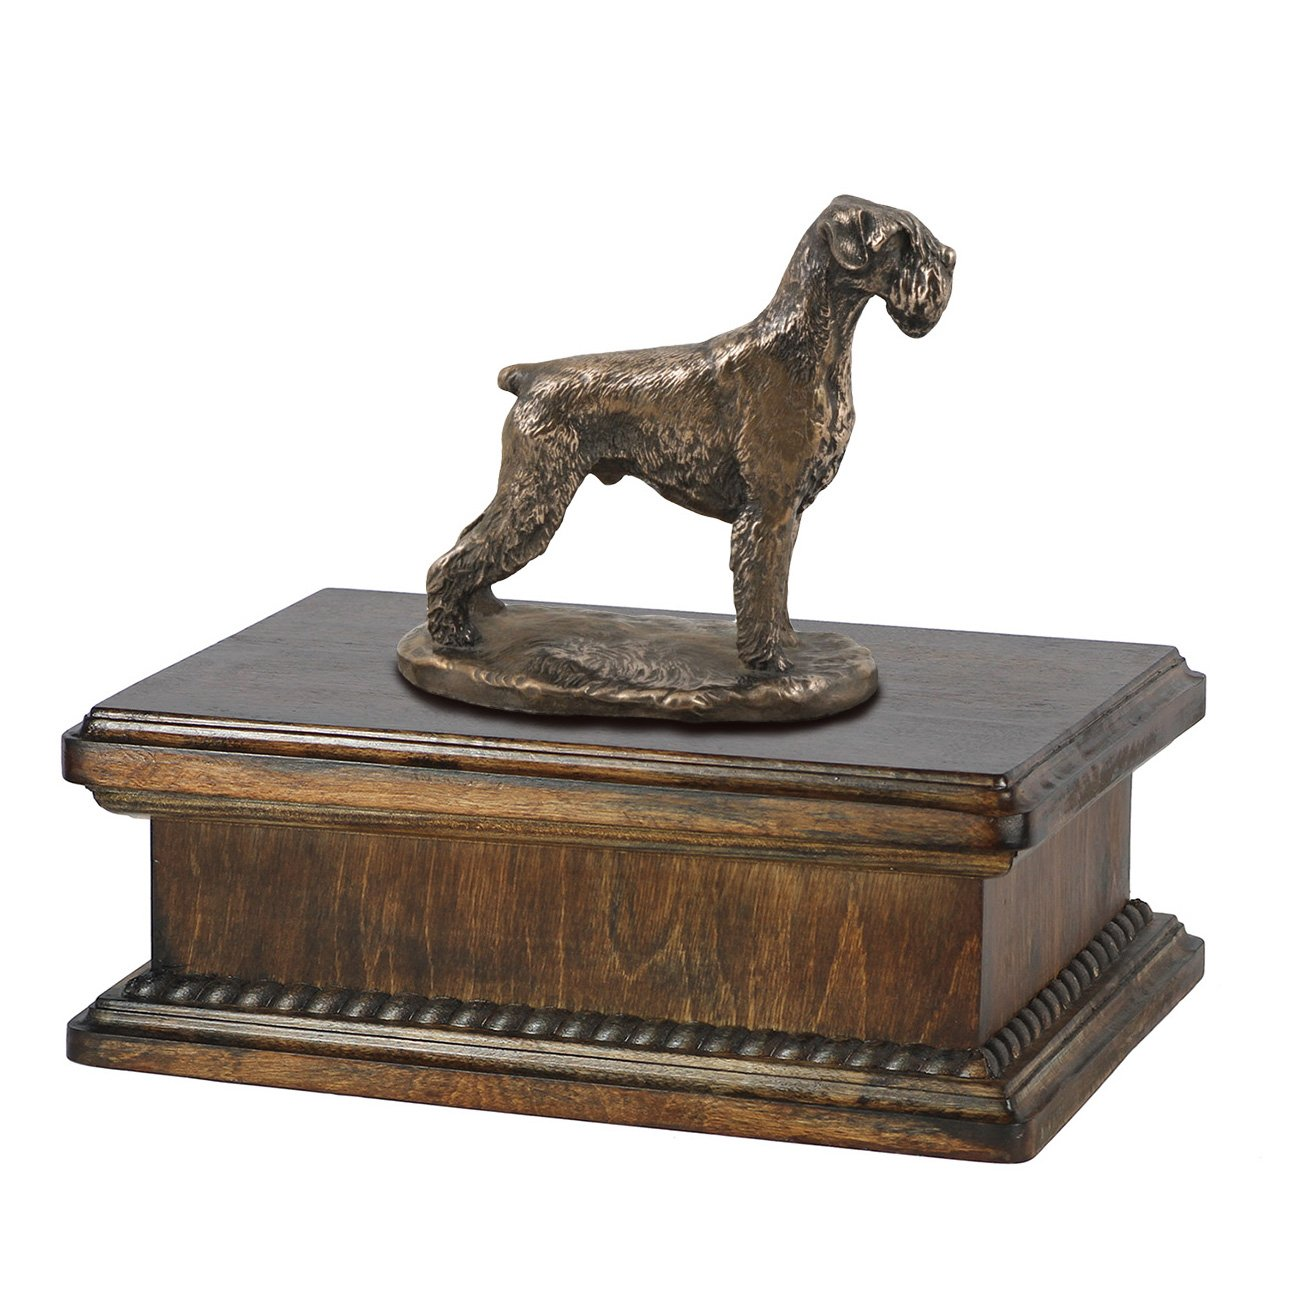 Schnauzer (uncropped), memorial, urn for dog's ashes, with dog statue, exclusive, ArtDog